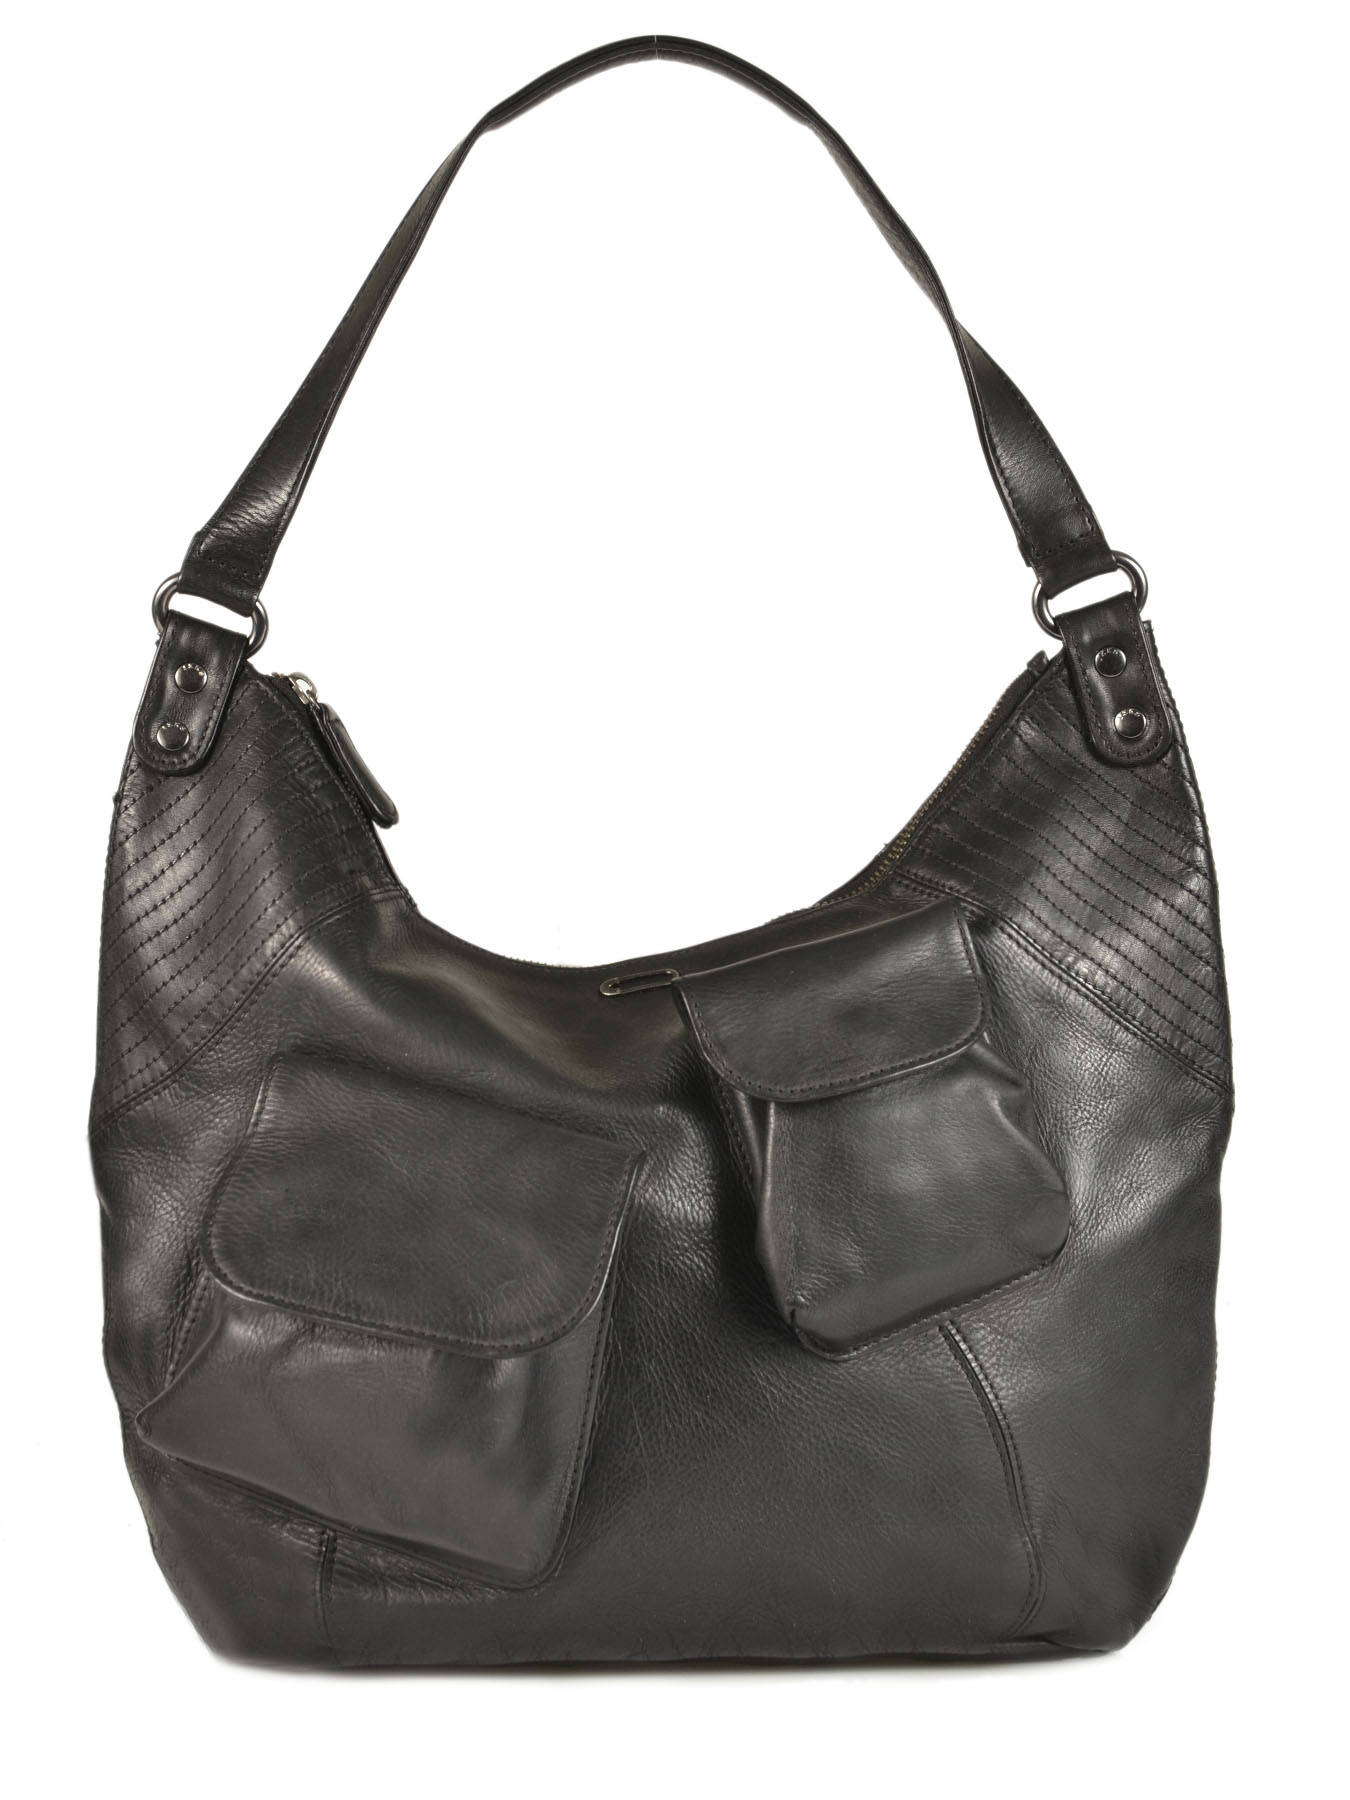 460a0a607b ... Sac Besace Mrs Fisher Heritage Cuir Ikks Noir les heritiers BK95119 ...